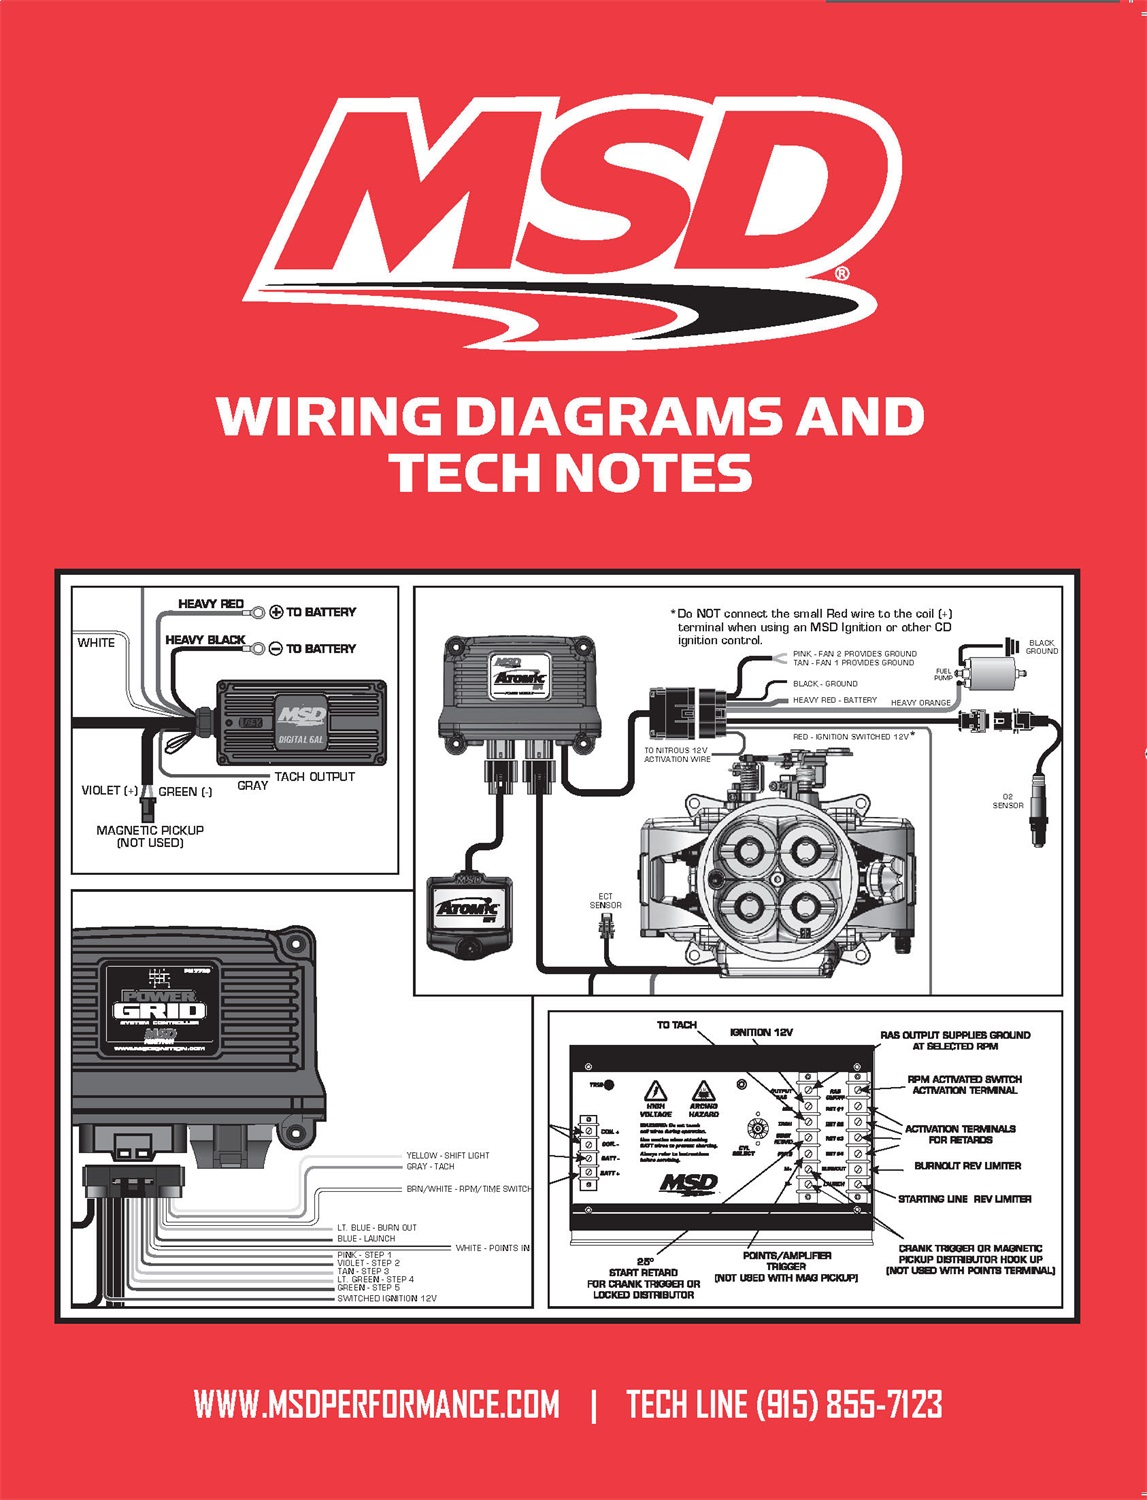 msd ignition wiring diagrams and technotes 3 gang switch diagram 9615 book tech notes